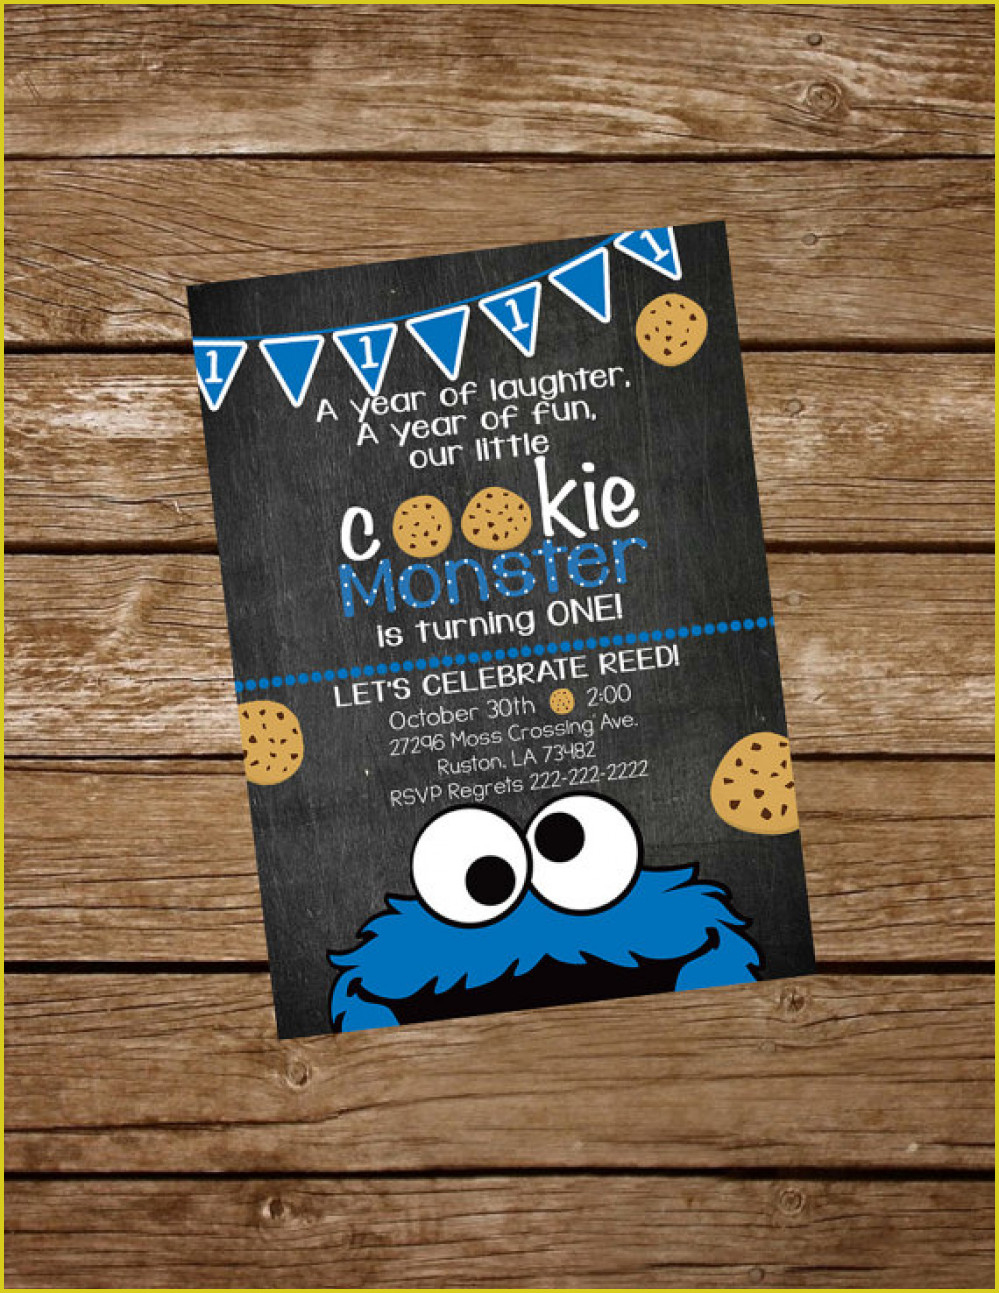 Elegant Cookie Monster Birthday Invitations Which Can Be Used As - Free Printable Cookie Monster Birthday Invitations